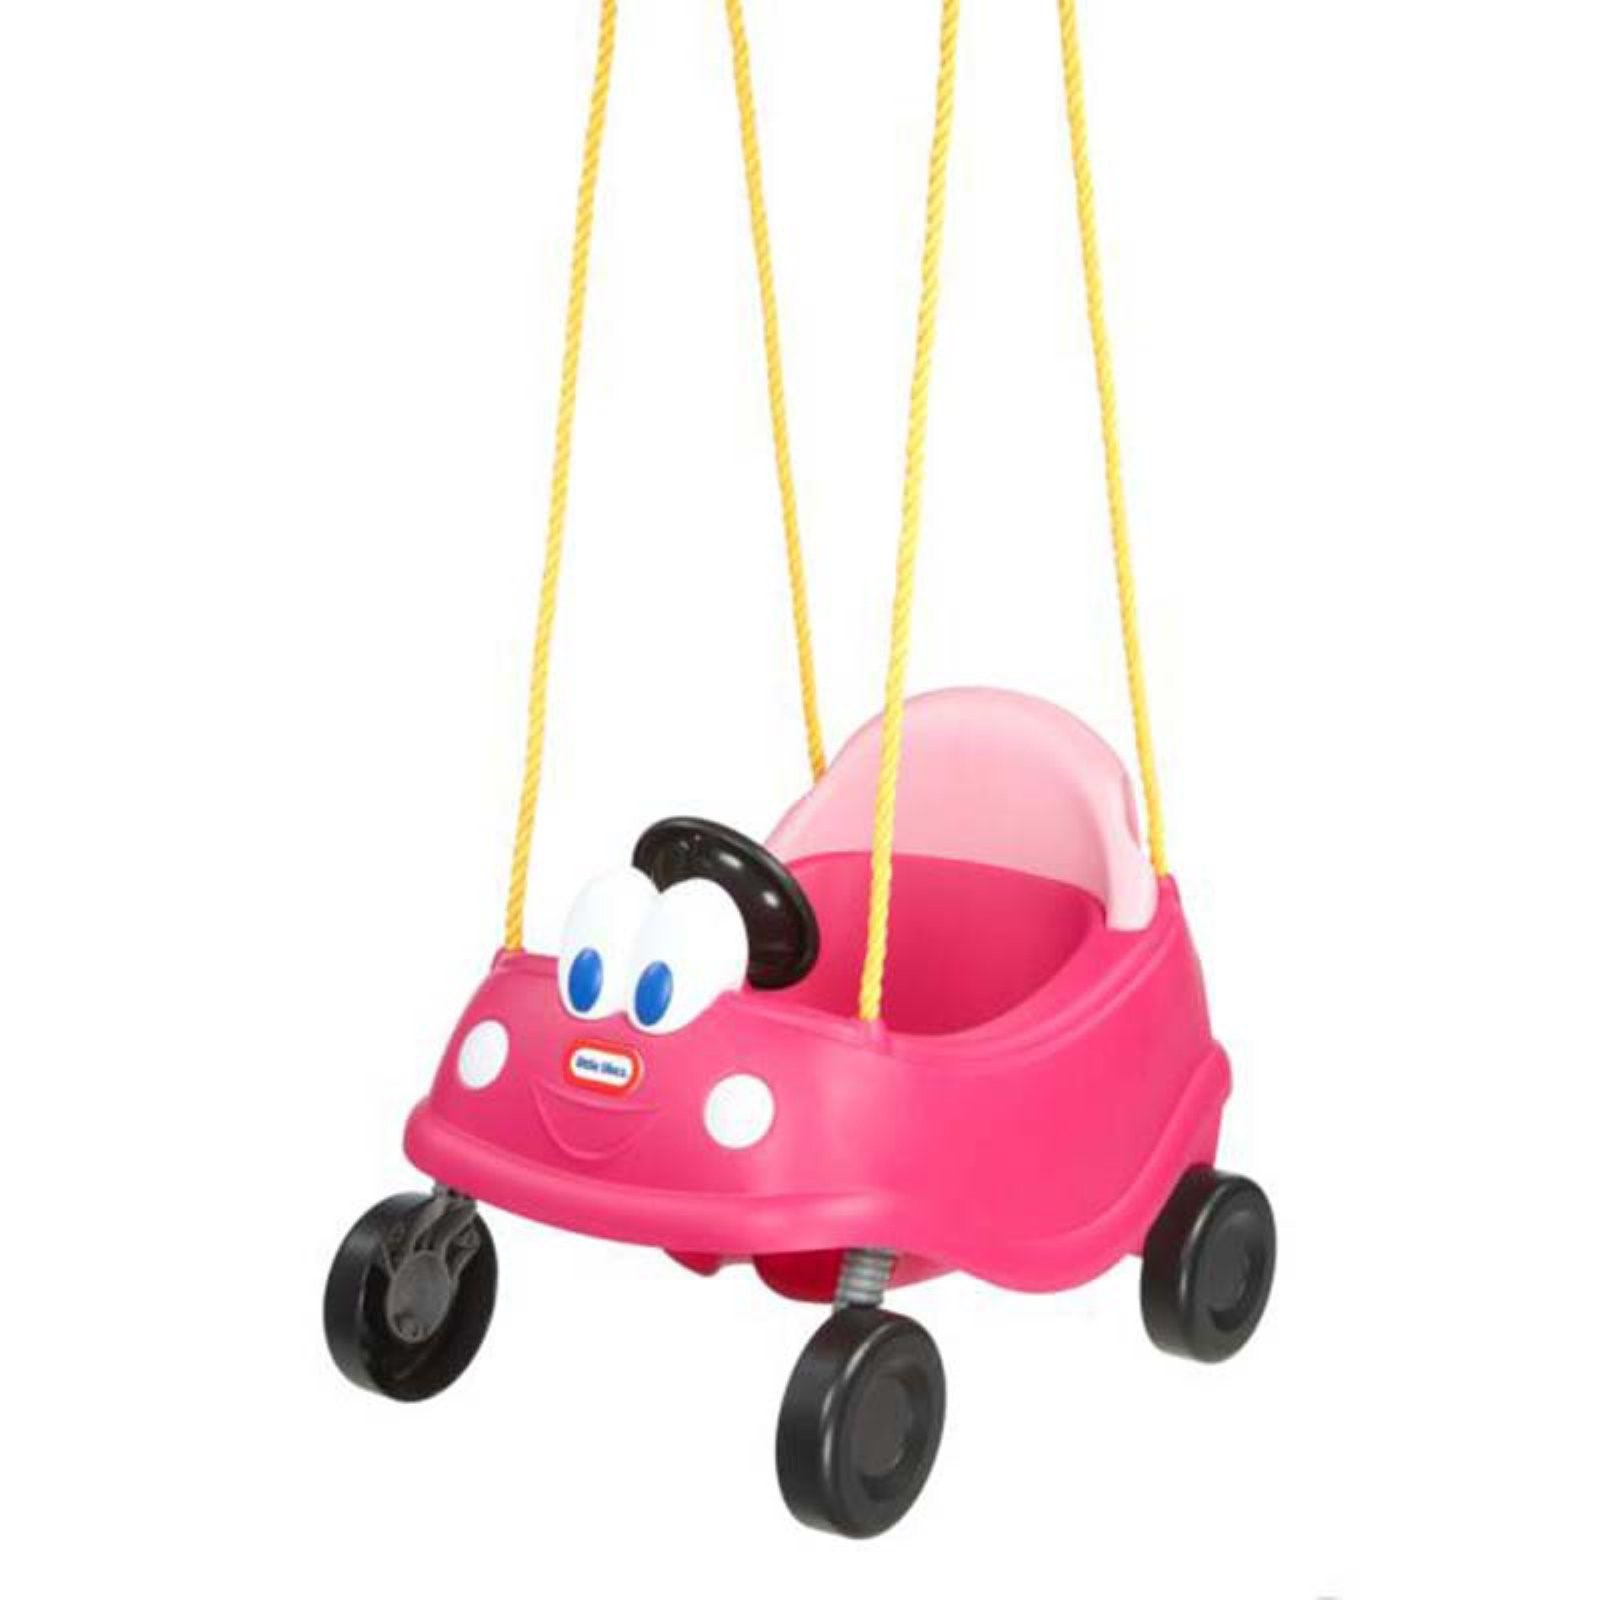 Cozy Coupe First Swing Best Swing Set Accessories